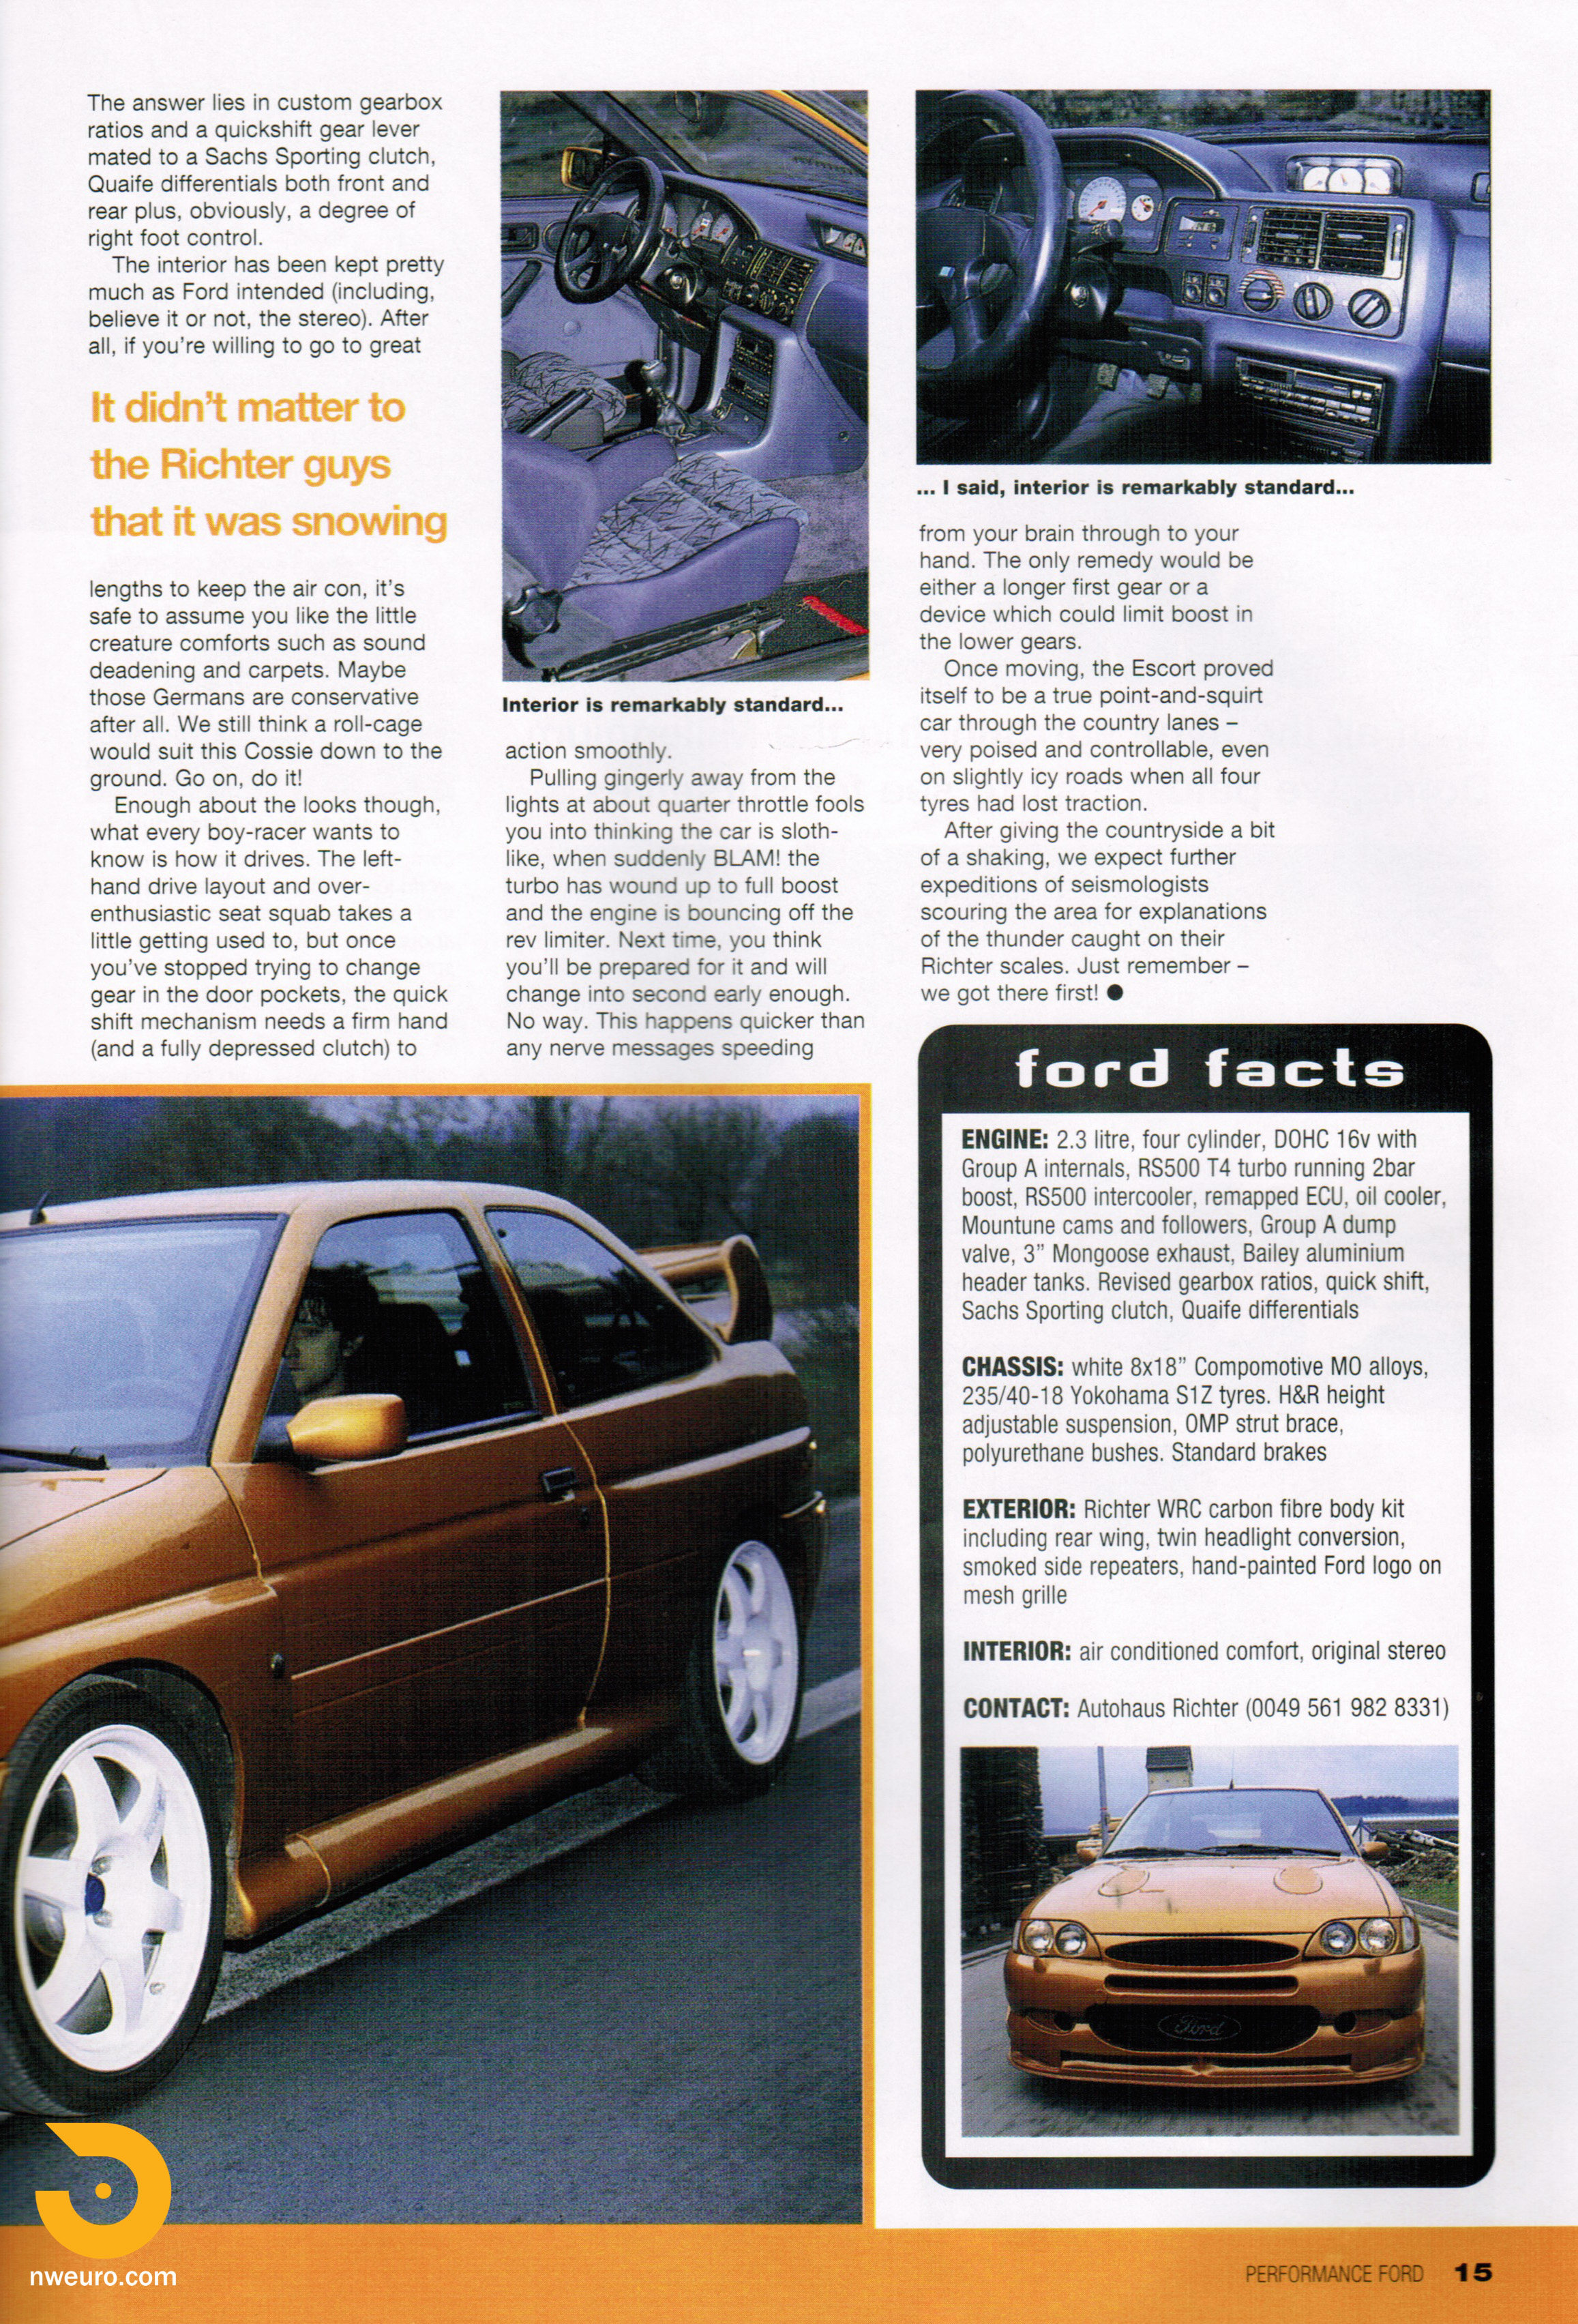 Performance Ford Magazine - Gold Cosworth-7.jpg